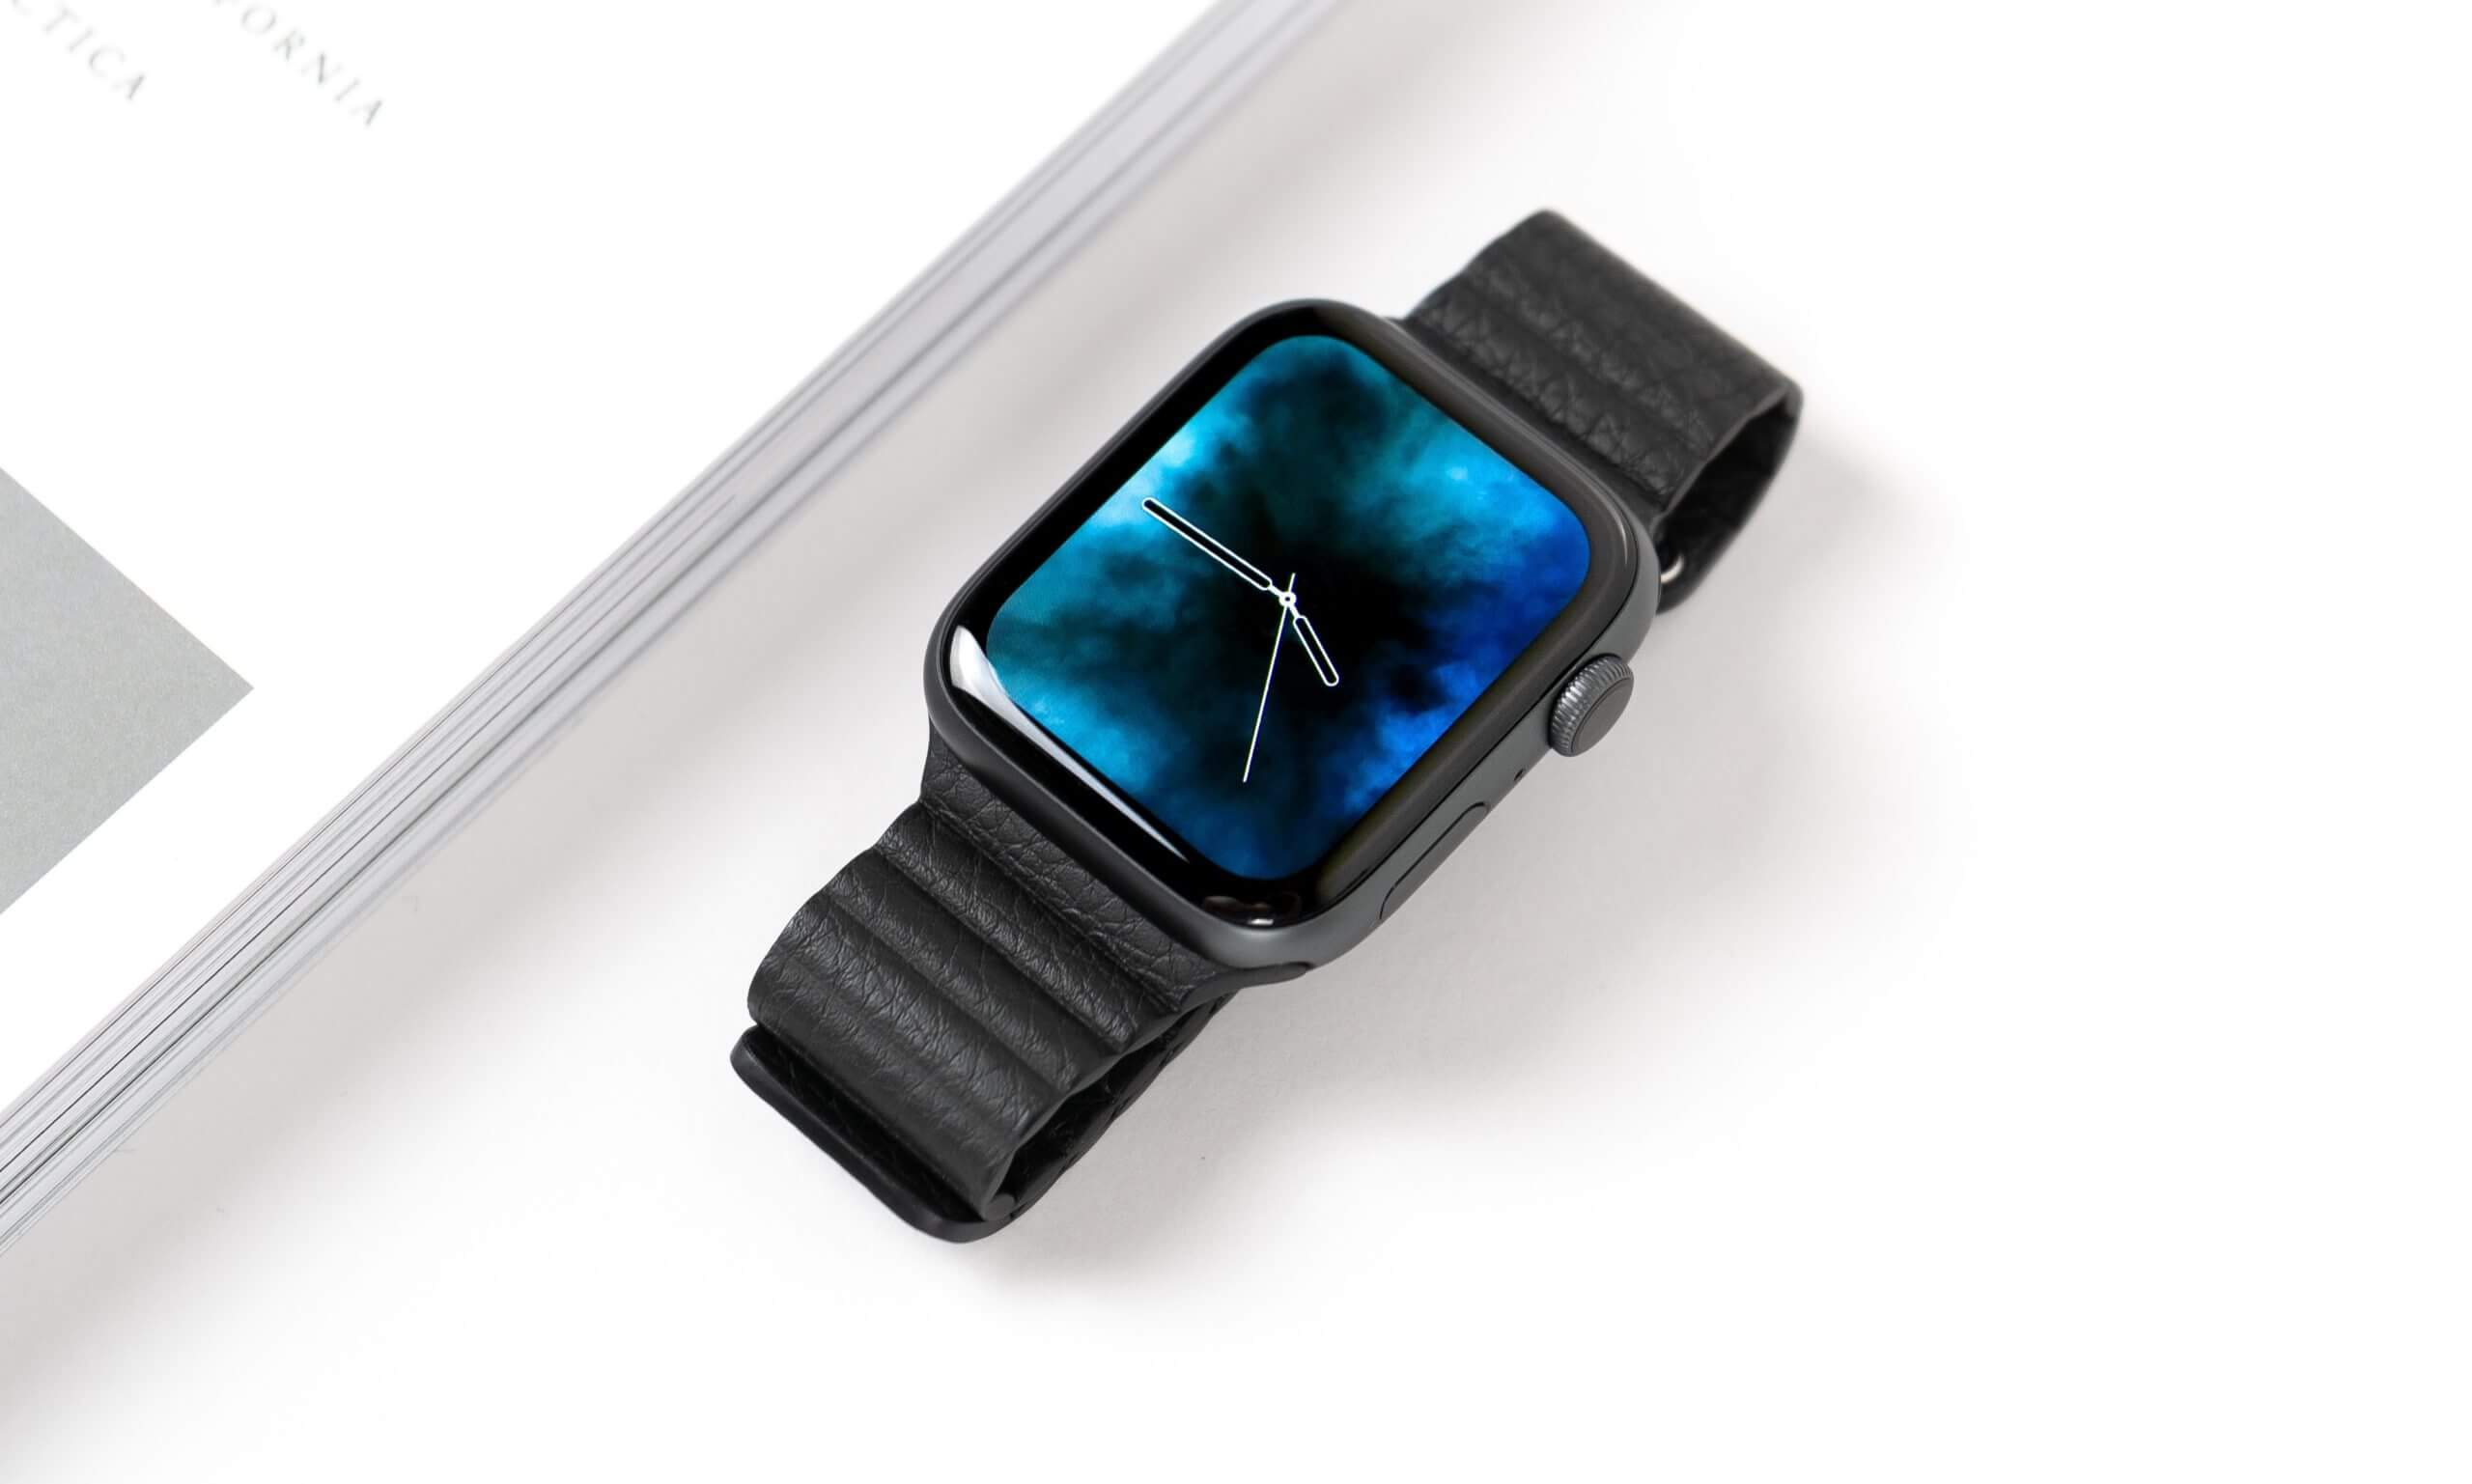 AppleWatchS4